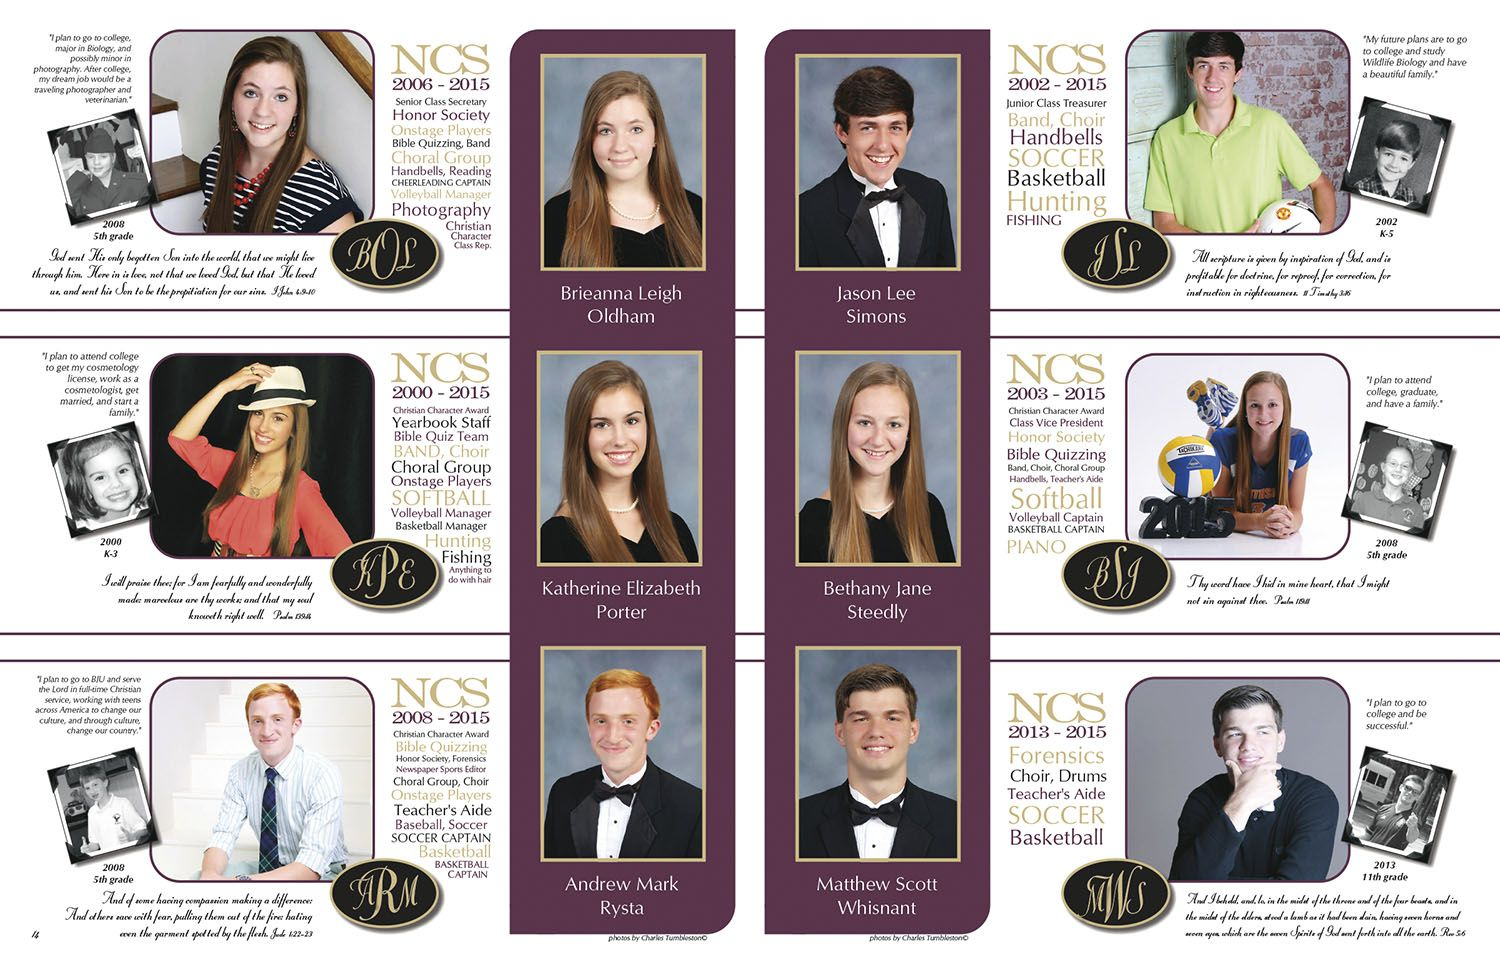 Eyrie Northside Christian School North Charleston Sc Jostens Lookbook2016 Ybklove Yearbook Class Teaching Yearbook Hunting Photography